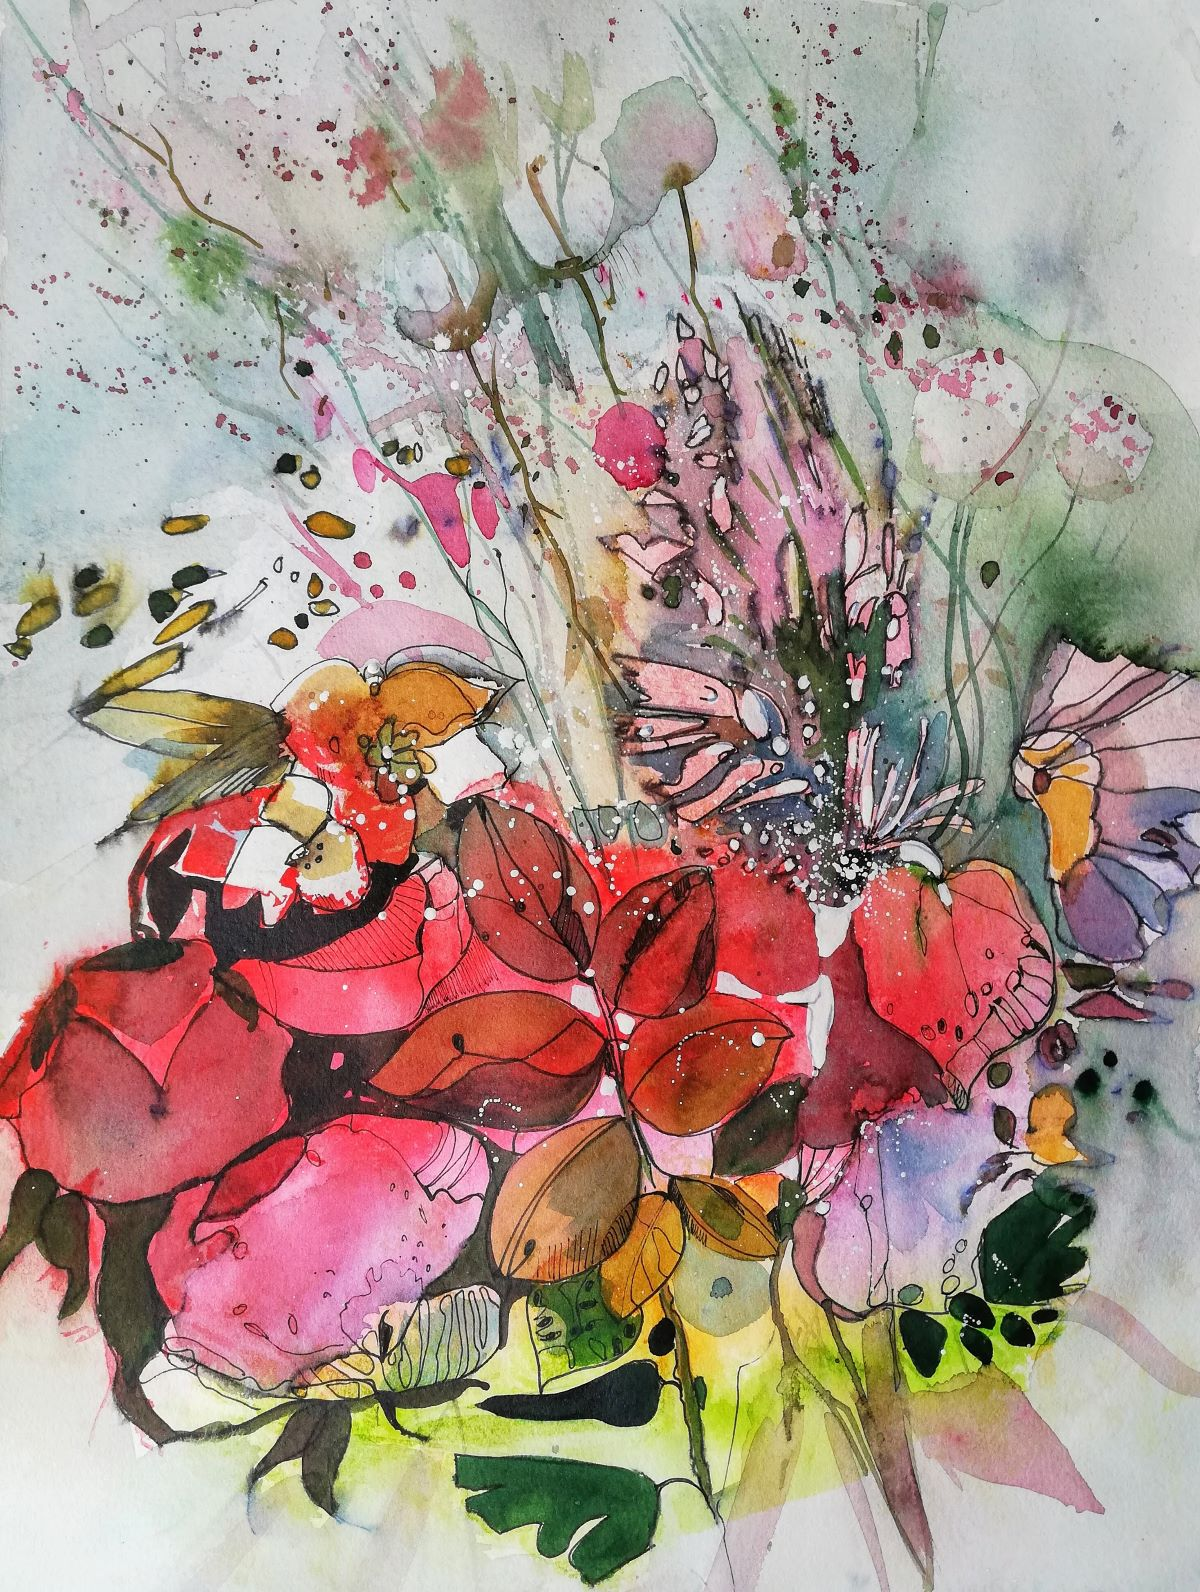 Blumen in Aquarell